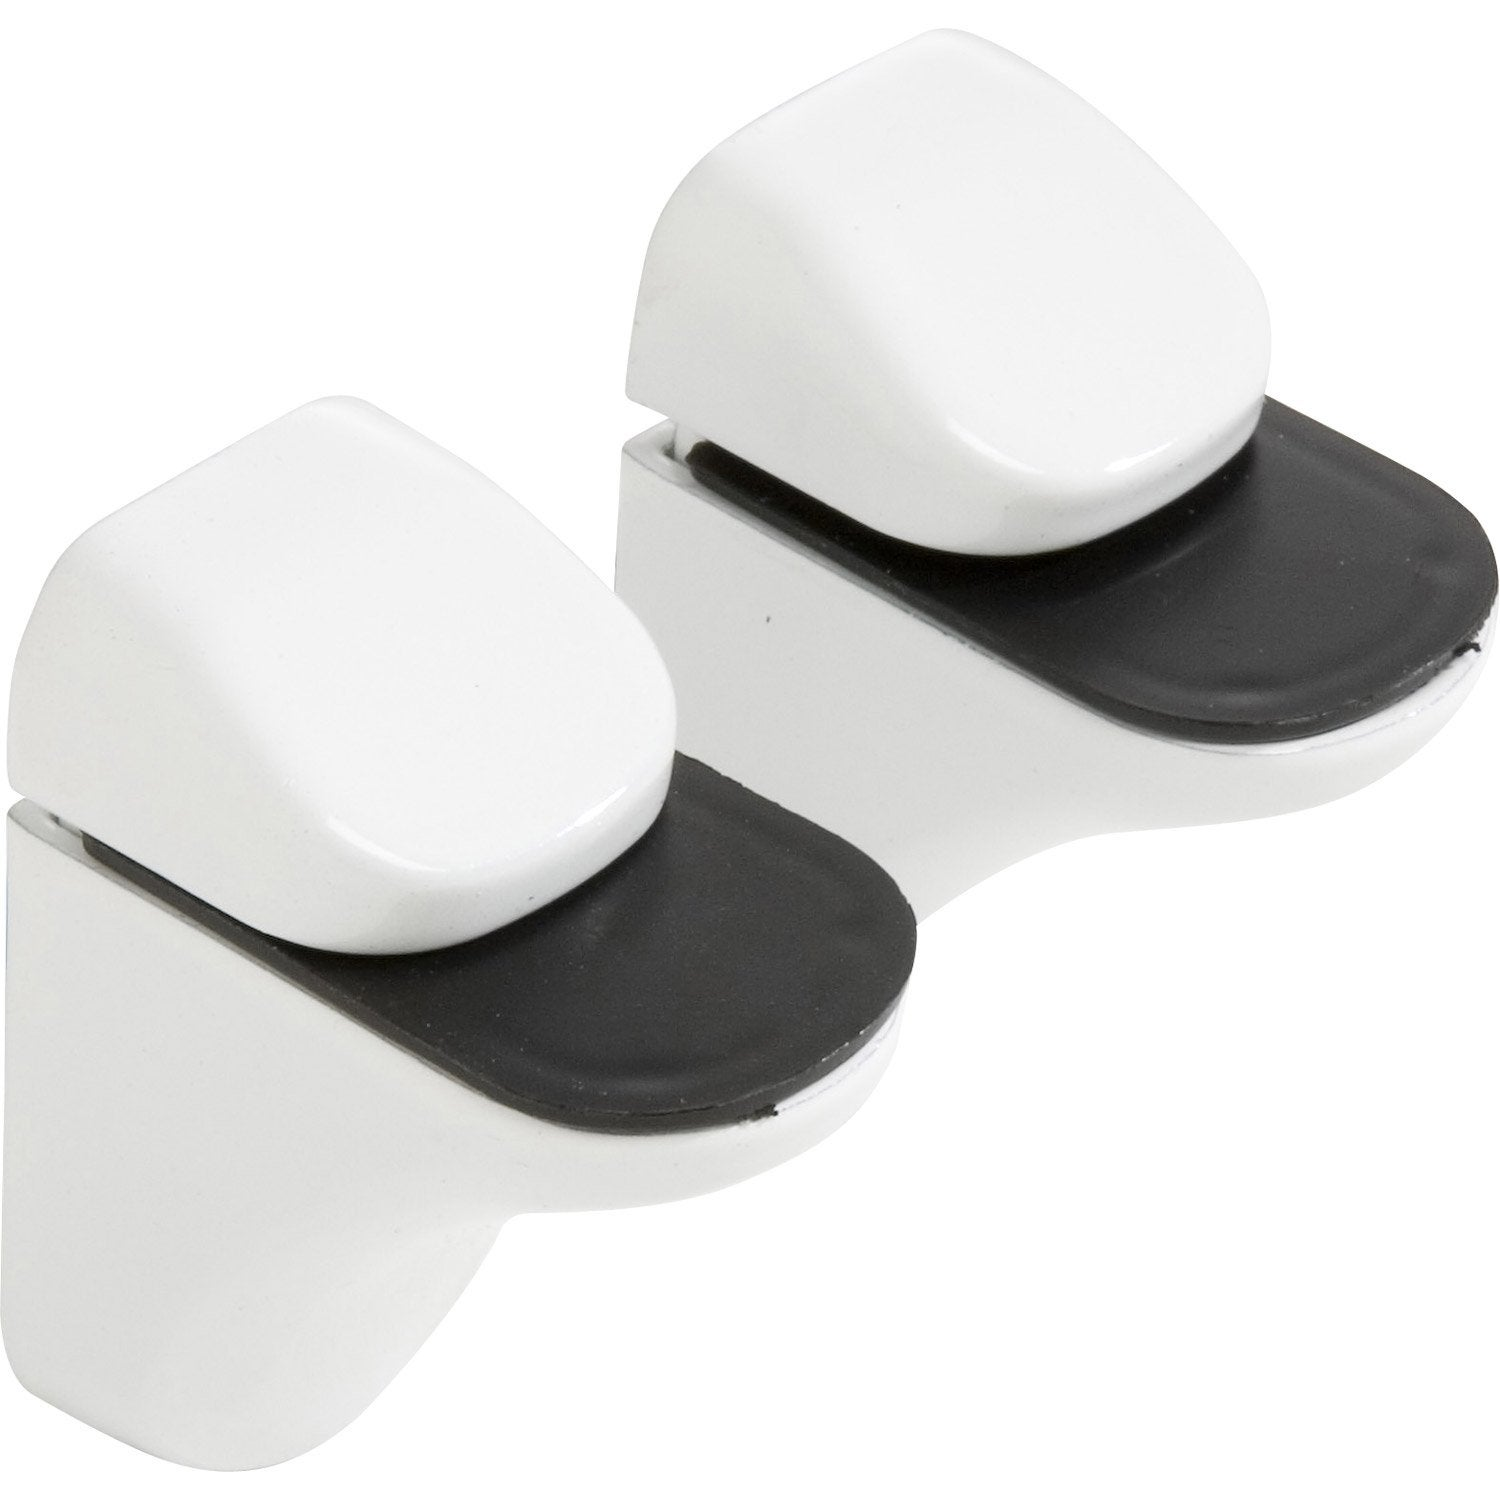 Lot de 2 supports tablette pince blanc laqu leroy merlin - Leroy merlin tablette chene ...